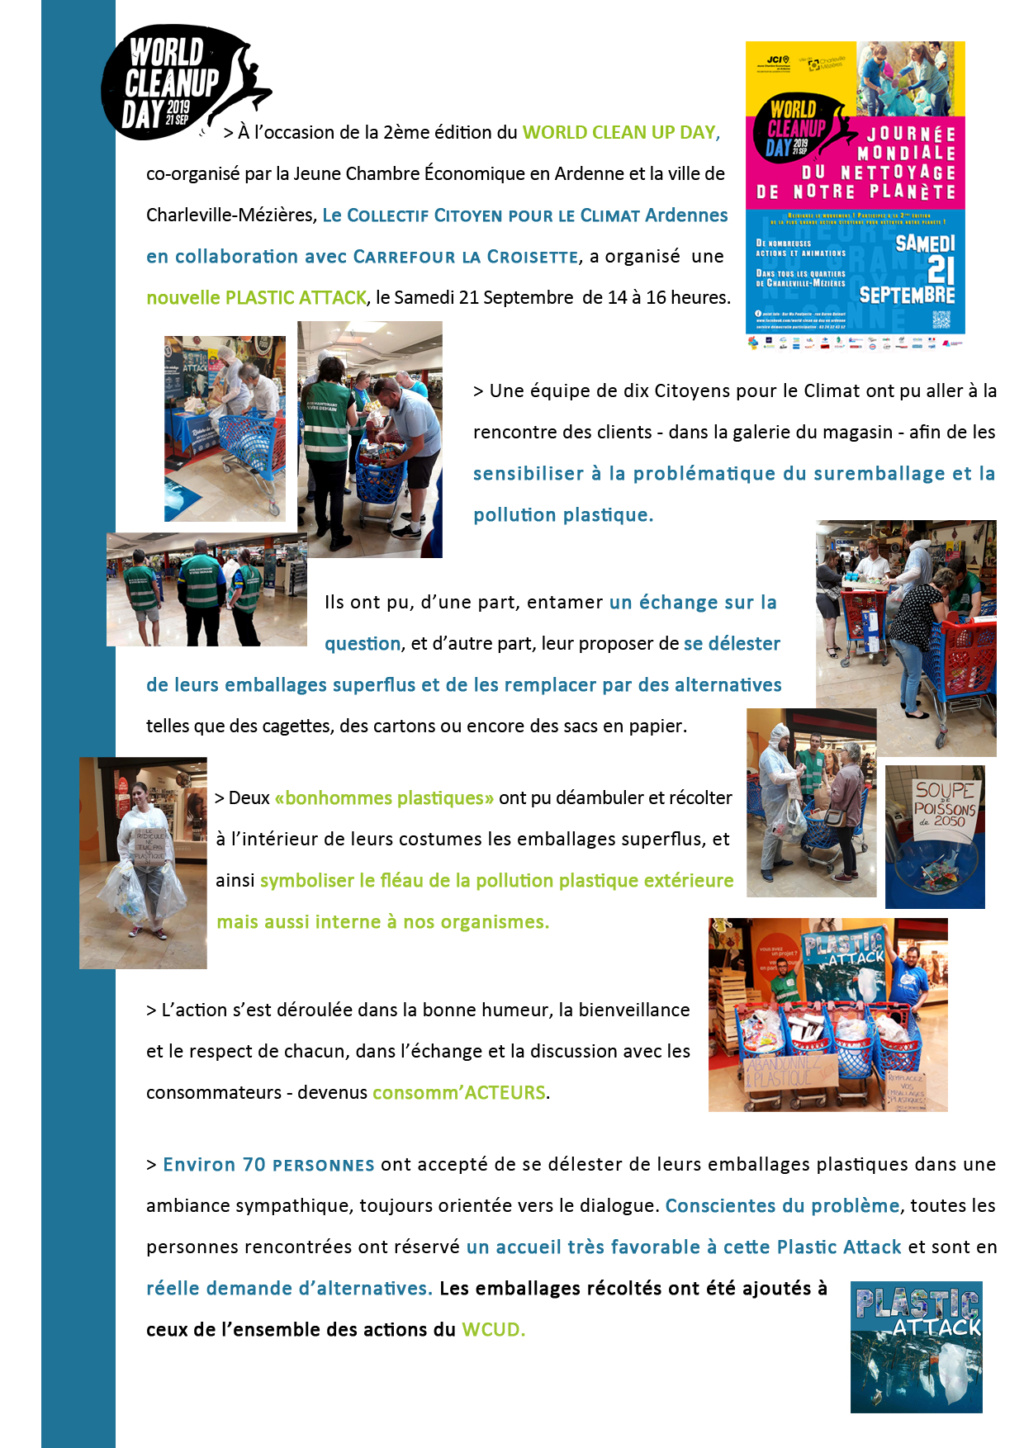 21/09/19 des plastics attacks en co-organisation avec le World Clean Up Day Ardennes  - Page 2 Bilan_22